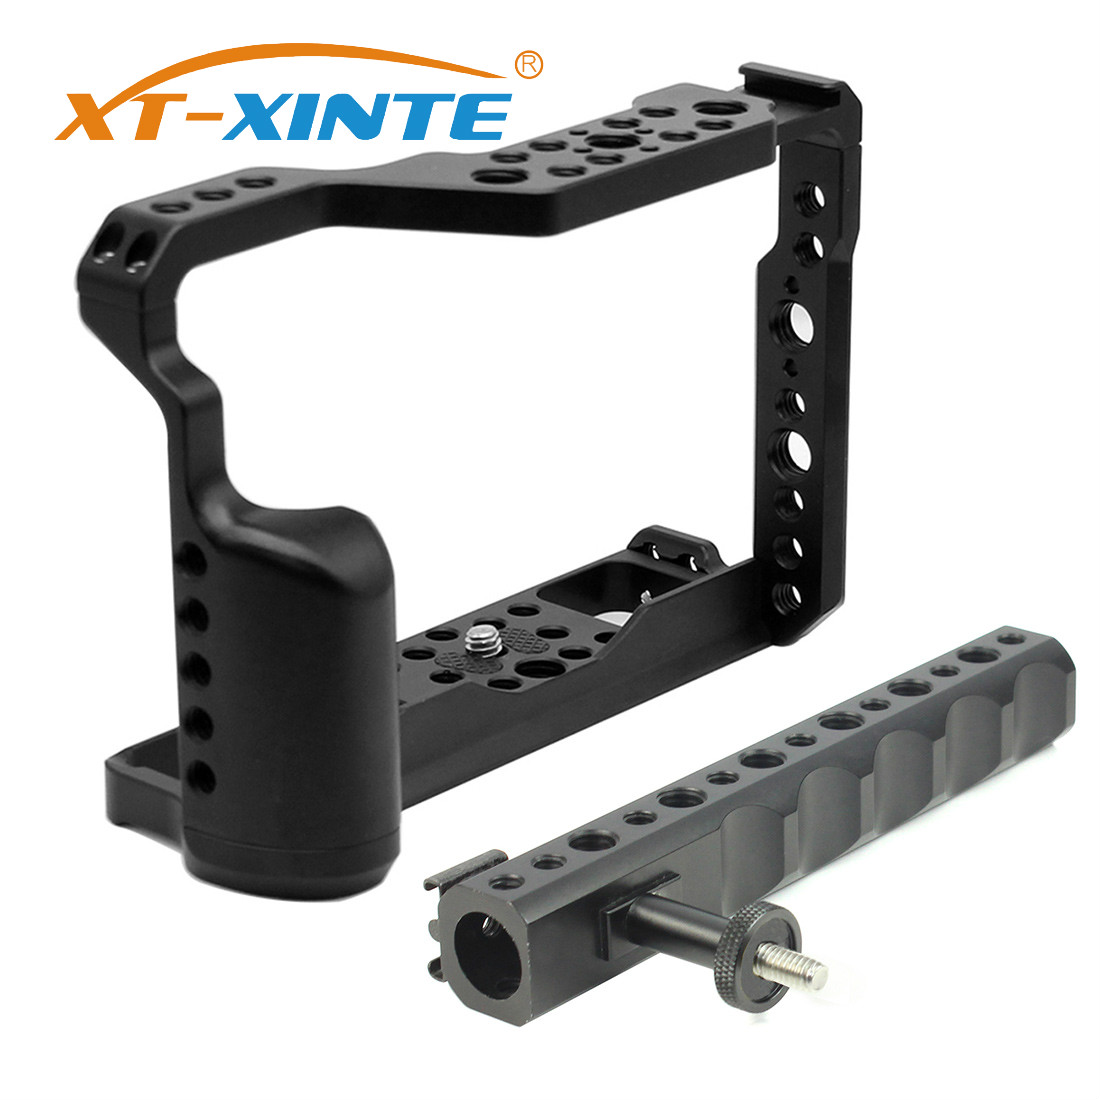 Aluminum Camera Cage With Top Handle For Fujifilm X-T3 /XT3 /XT2 /X-T2 DSLR Photography Light Video Rig Protective Case